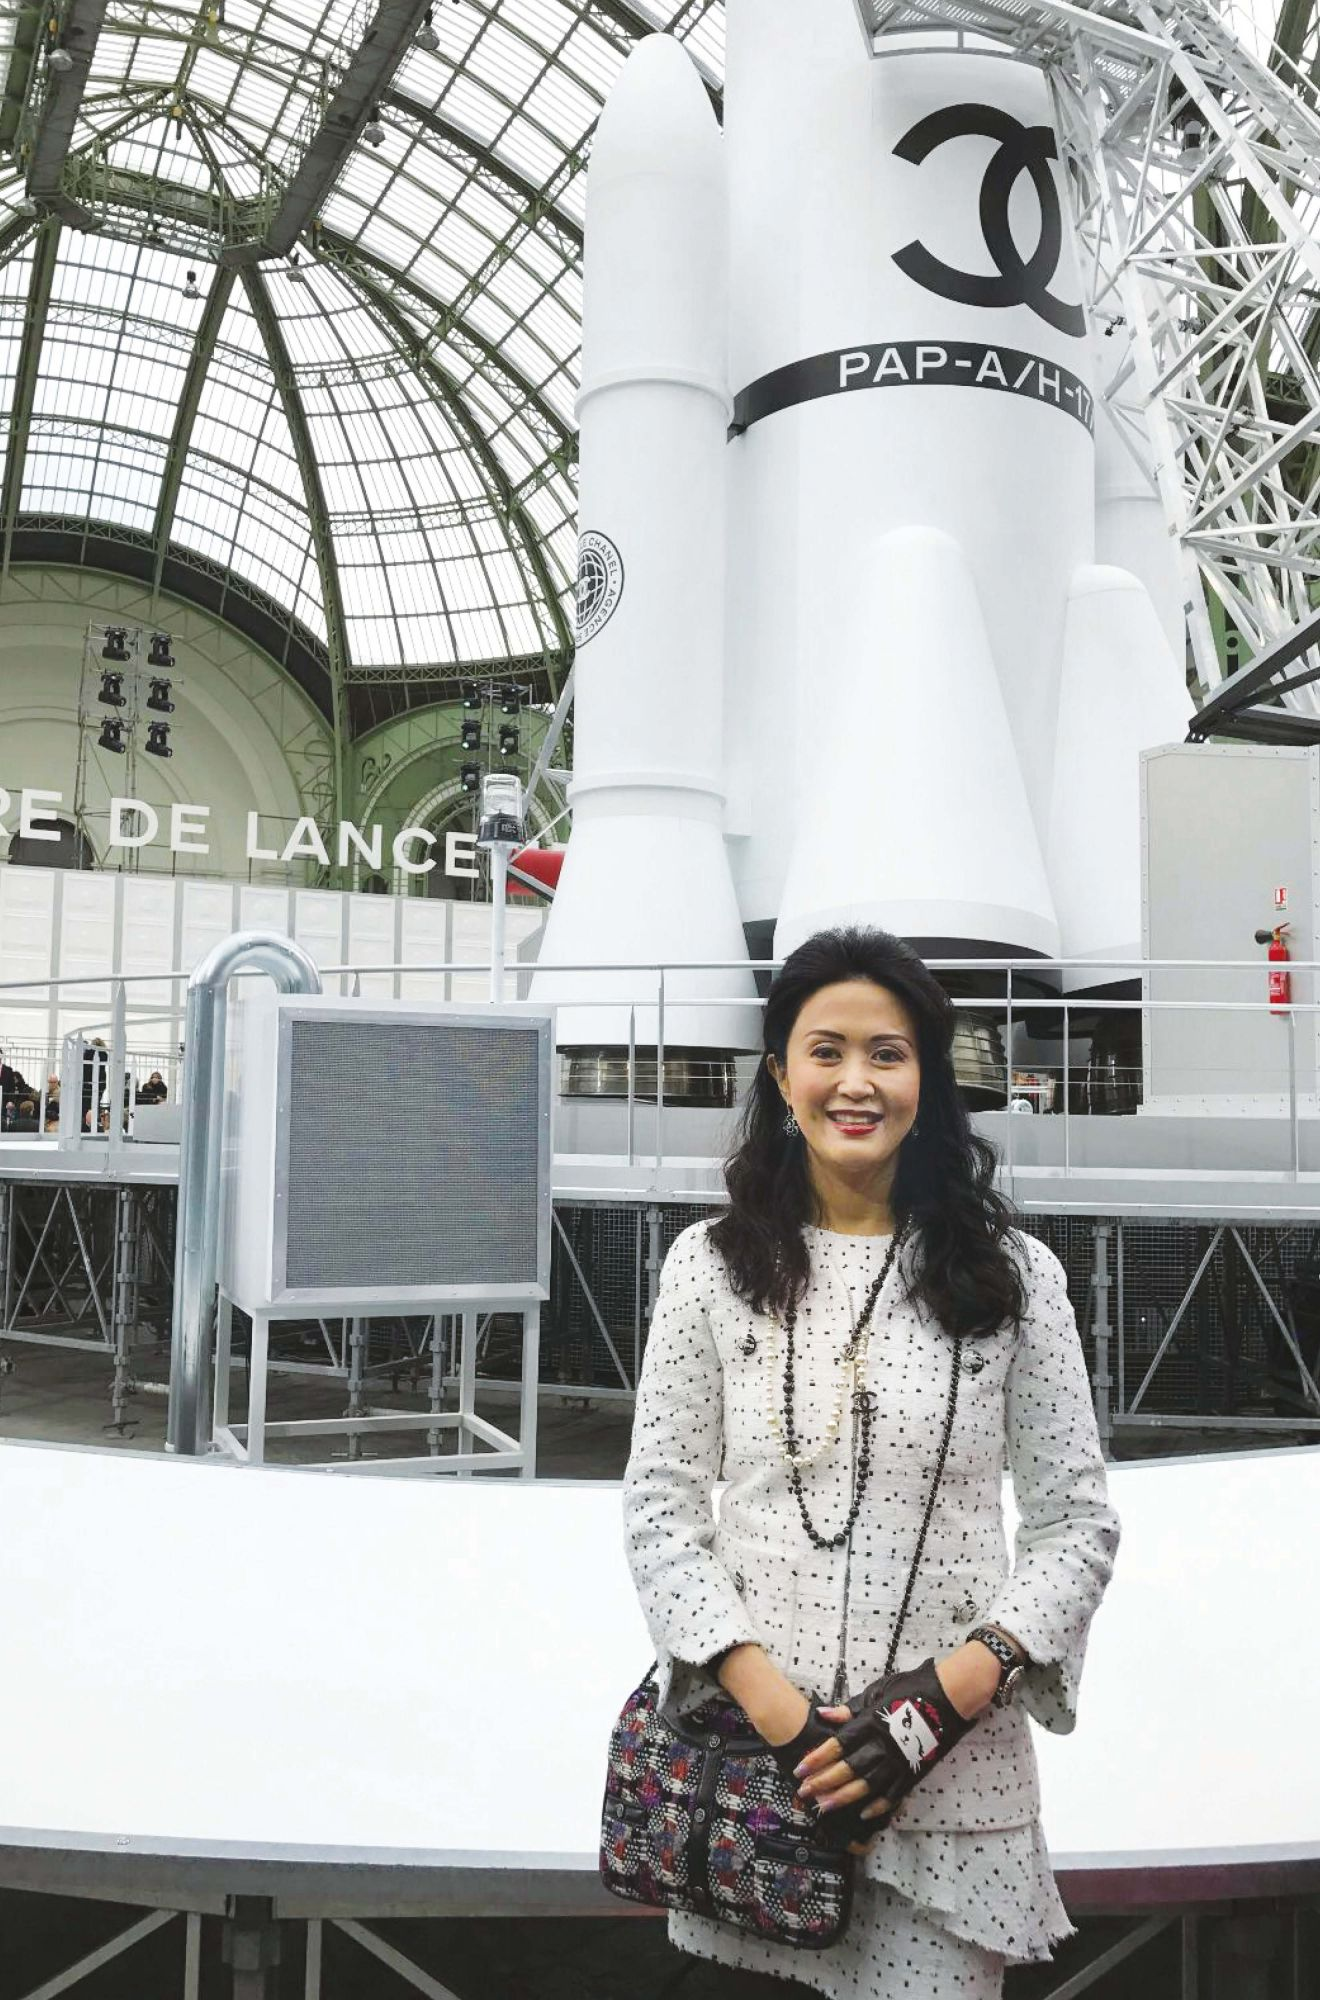 Leading Lady: Lianne Lam Talks Style And The Perks Of Being A Chanel VIP